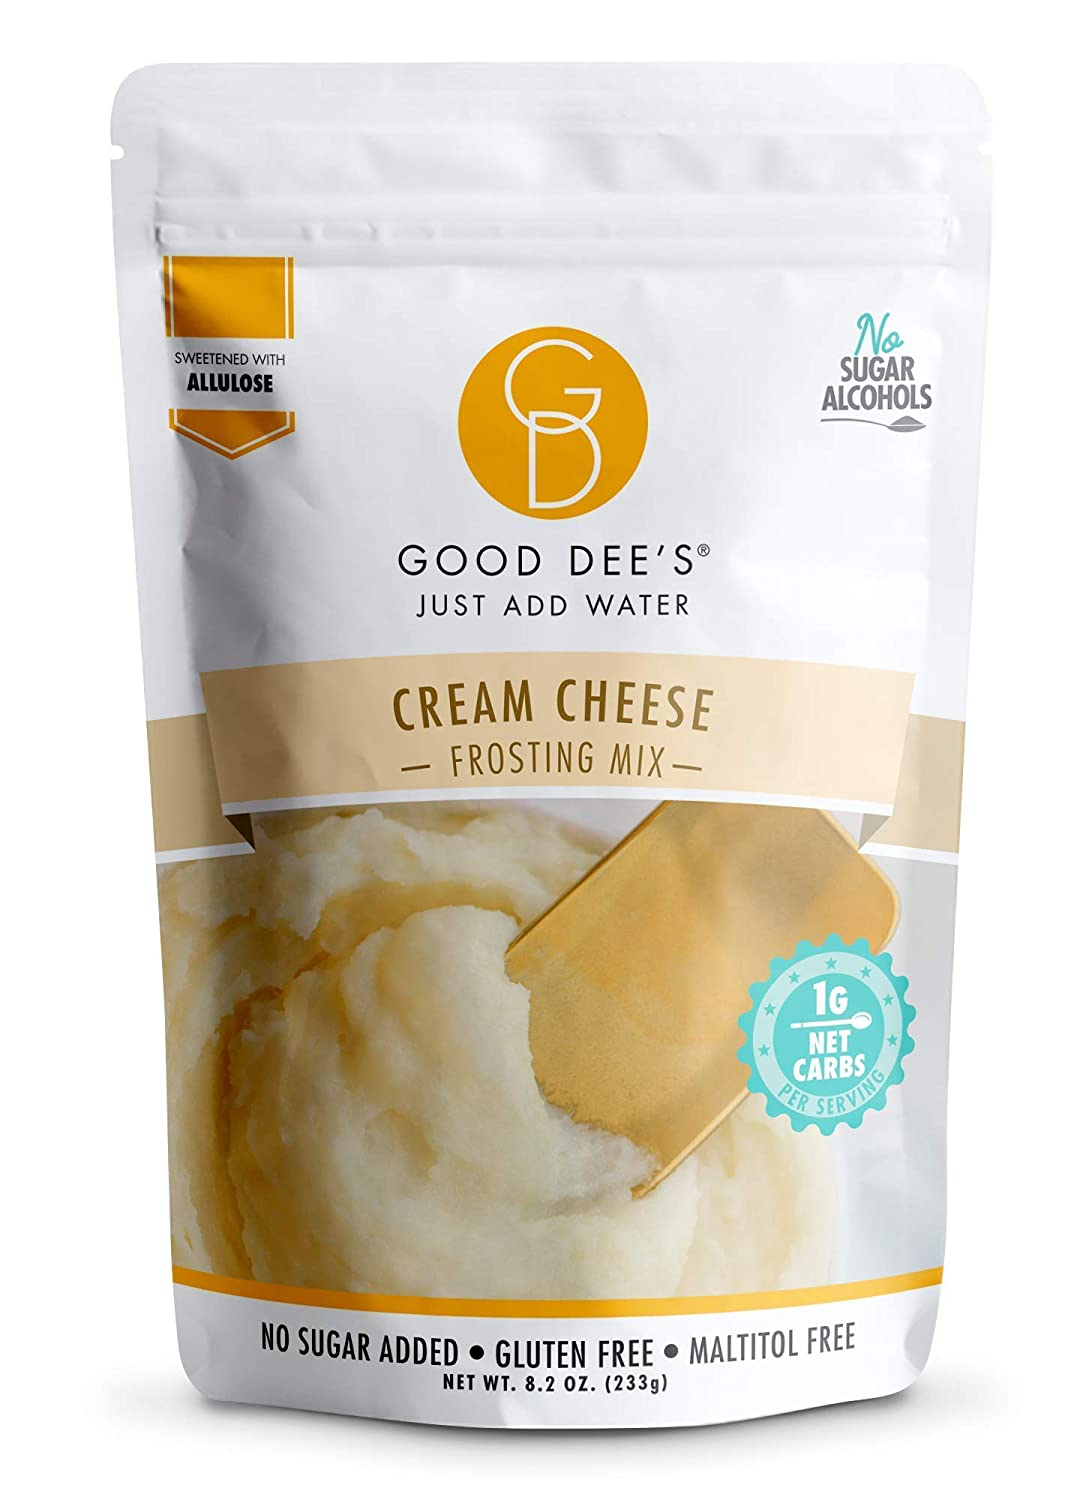 Good Dee's Just Add Water Cream Cheese Frosting Mix - Low Carb Keto Frosting Mix (60 Calories, 1g Net Carb Per Serving) | Gluten-Free, Sugar-Free & Maltitol-Free | Diabetic, Atkins Friendly